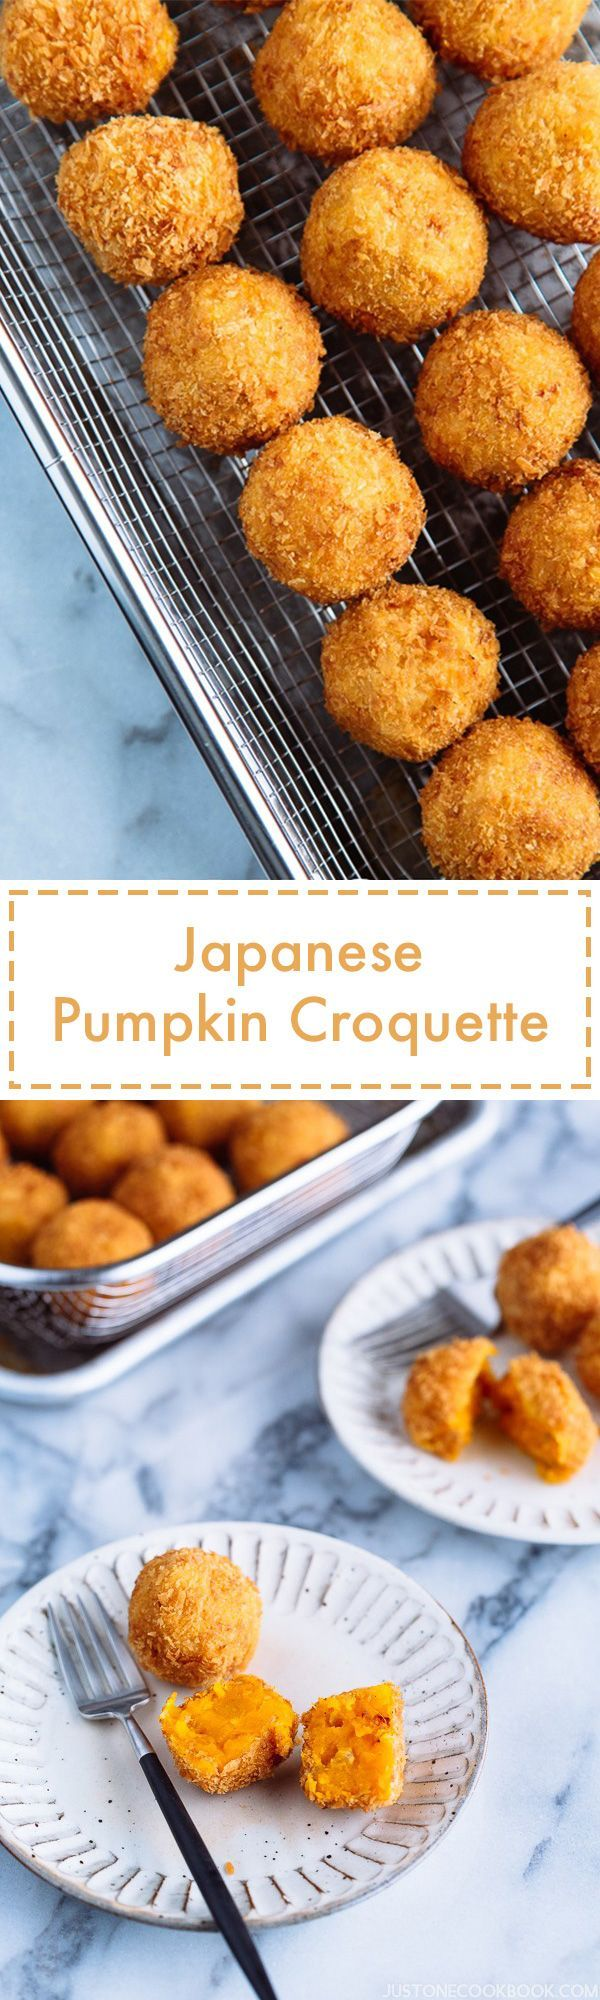 Japanese Pumpkin Croquettes (Kabocha Korokke) かぼちゃコロッケ | Easy Japanese Recipes at JustOneCookbook.com